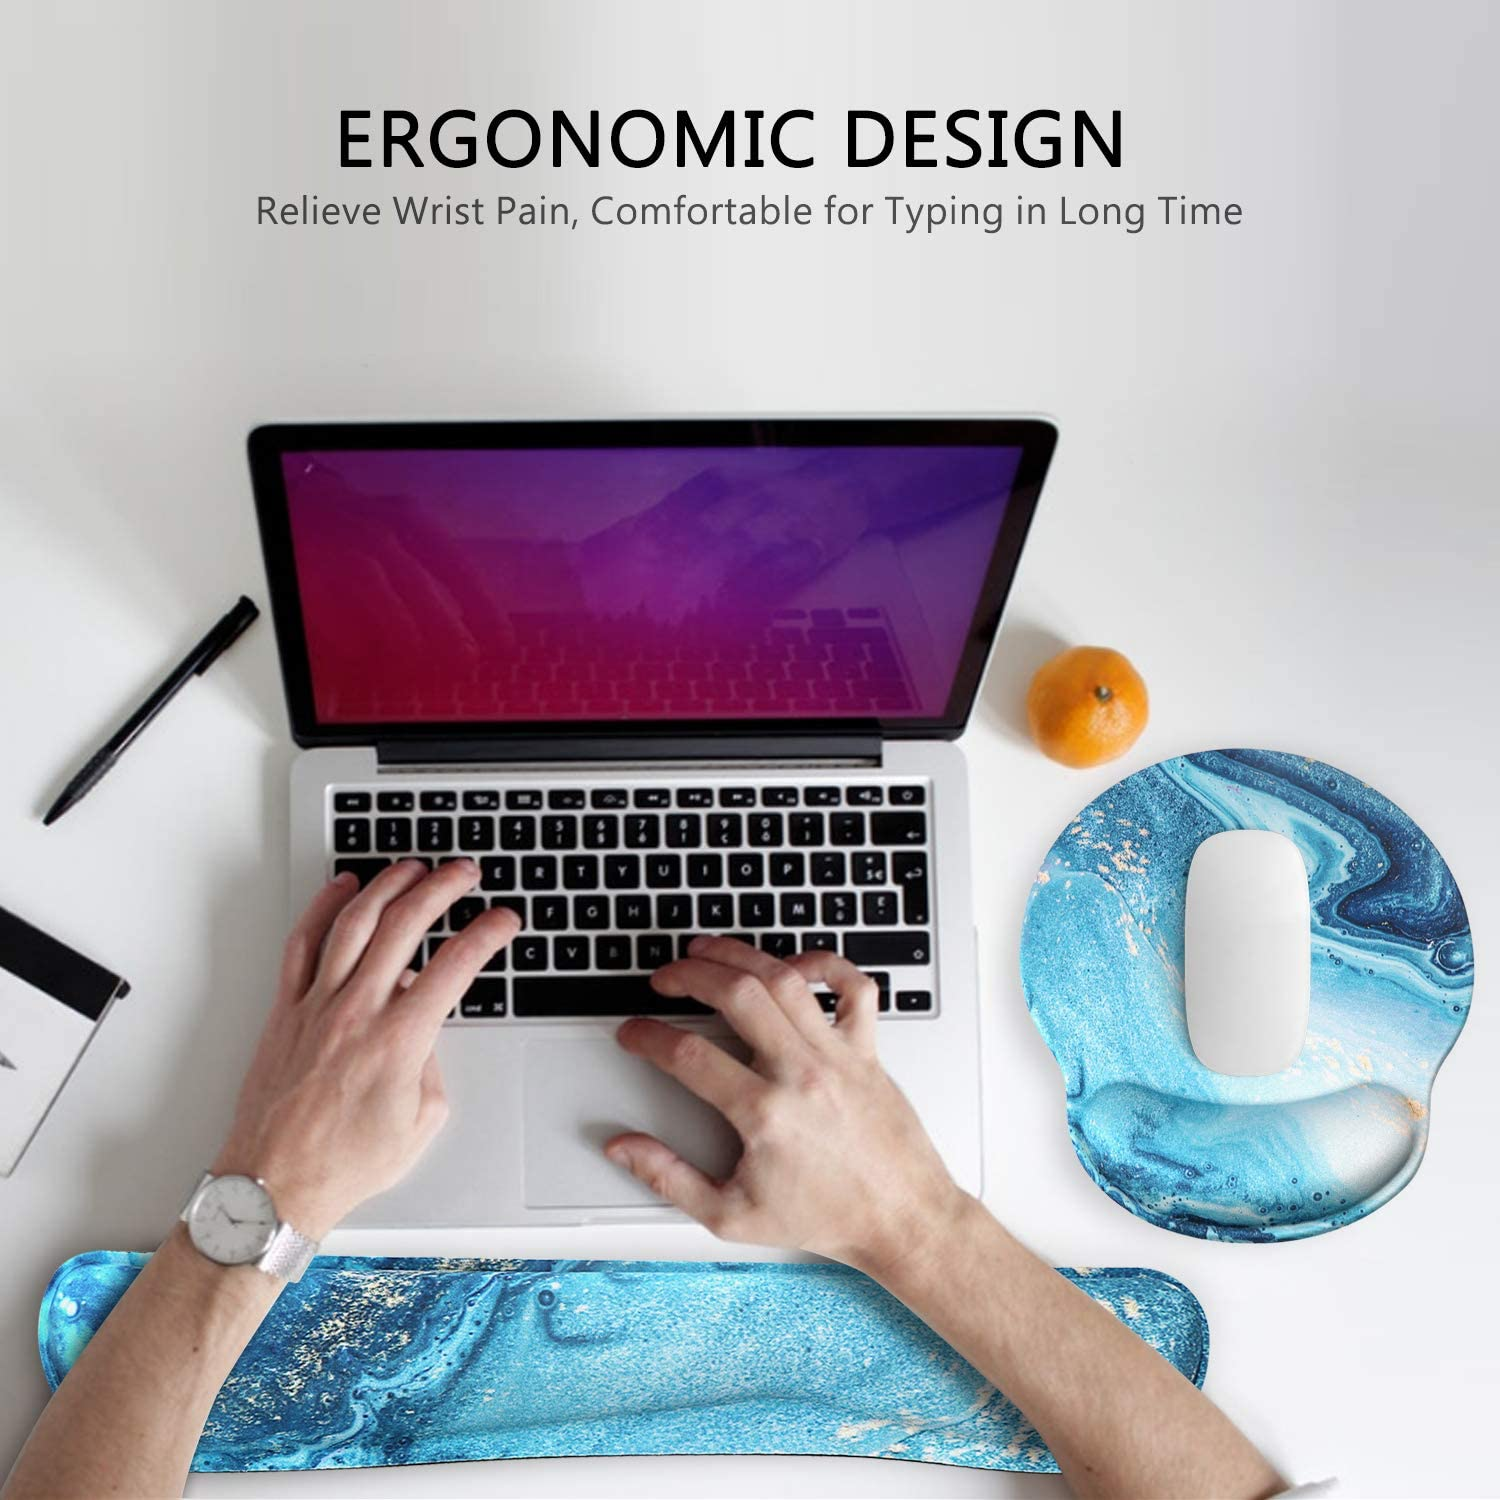 Easy-Typing and Pain Relief for Gaming Office Computer Laptop HAOCOO Ergonomic Mouse Pad Wrist Support and Keyboard Wrist Rest Set with Non-Slip Backing Memory Form-Filled Pink Hyacinth